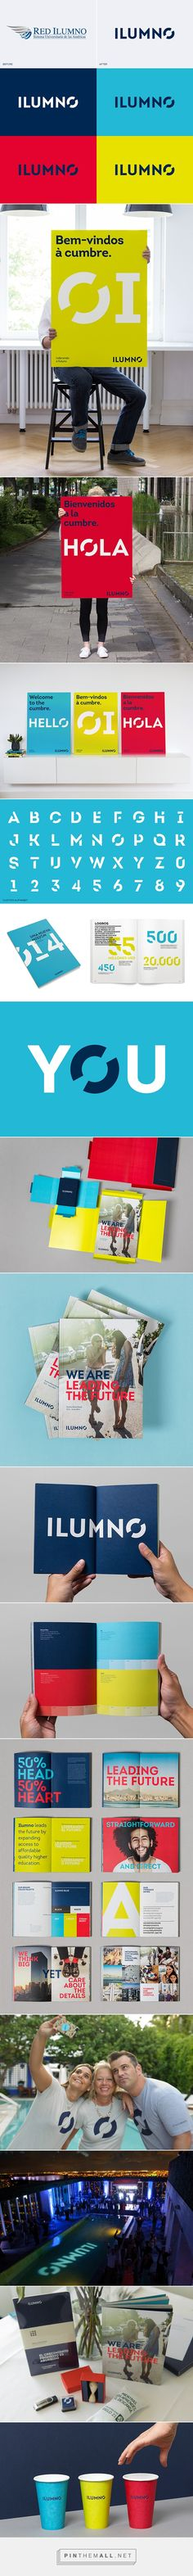 Ilumno Rebrand on Behance -- - - - -- - - - - -... - a grouped images picture - Pin Them All